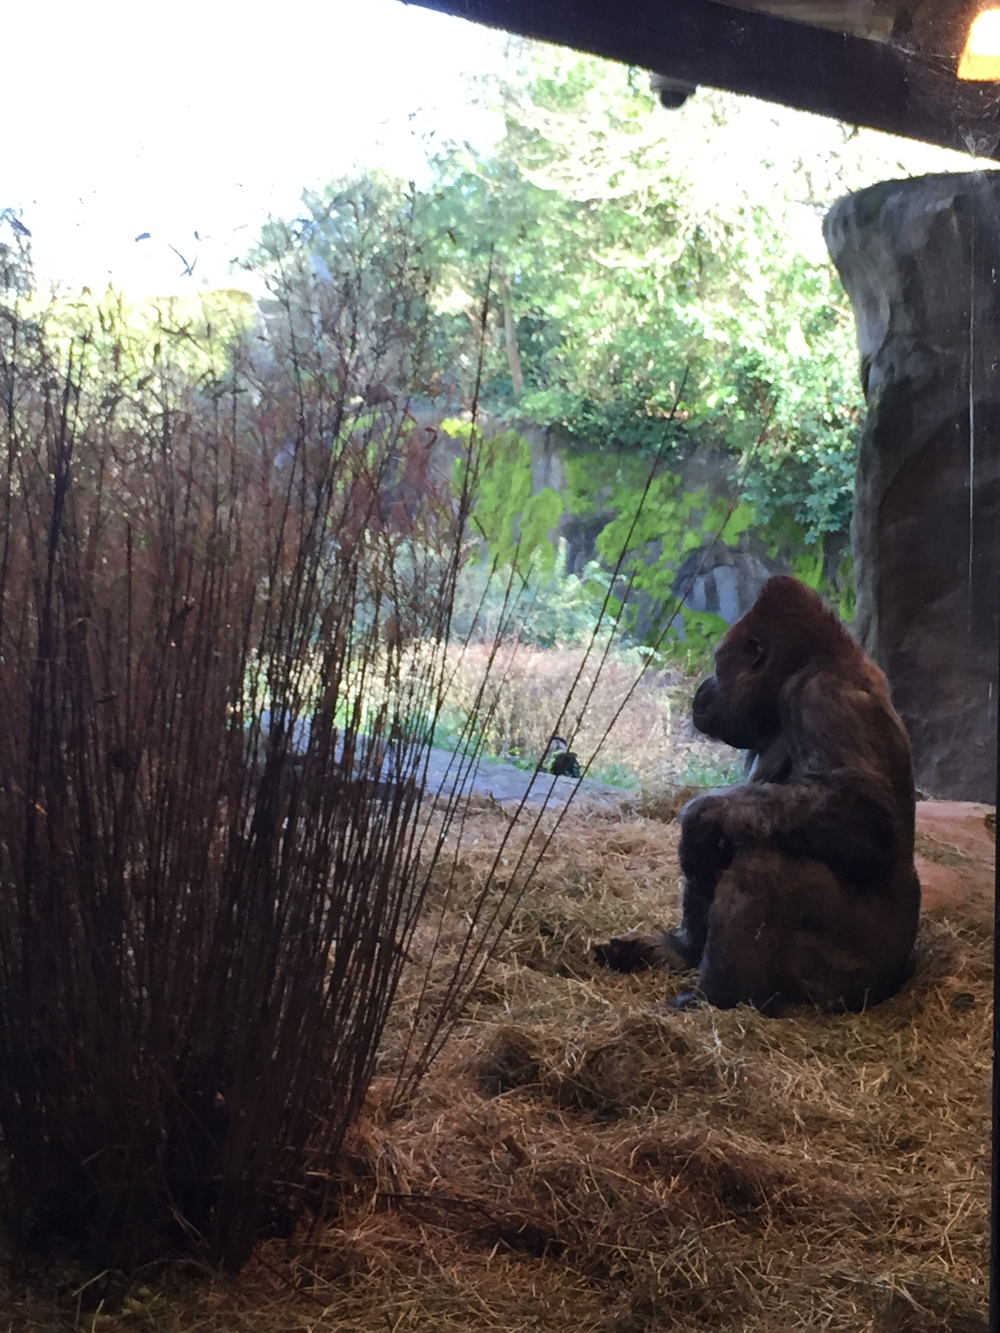 Since Yesterday - Woodland Park Zoo